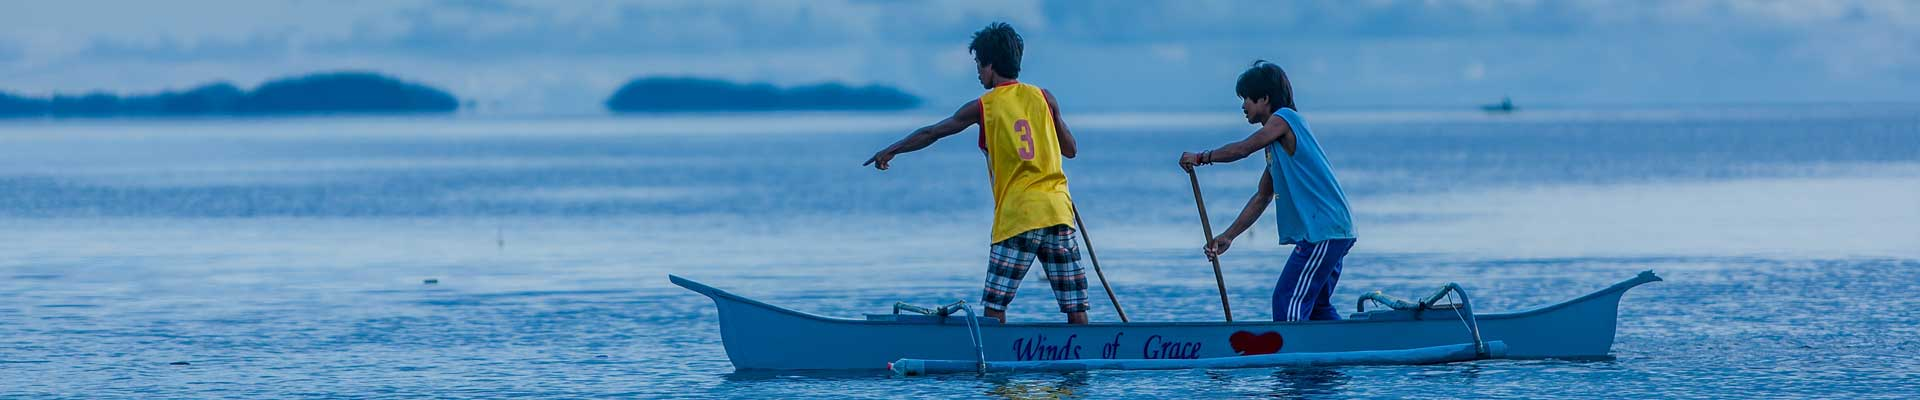 two Filipino men in an outrigger canoe